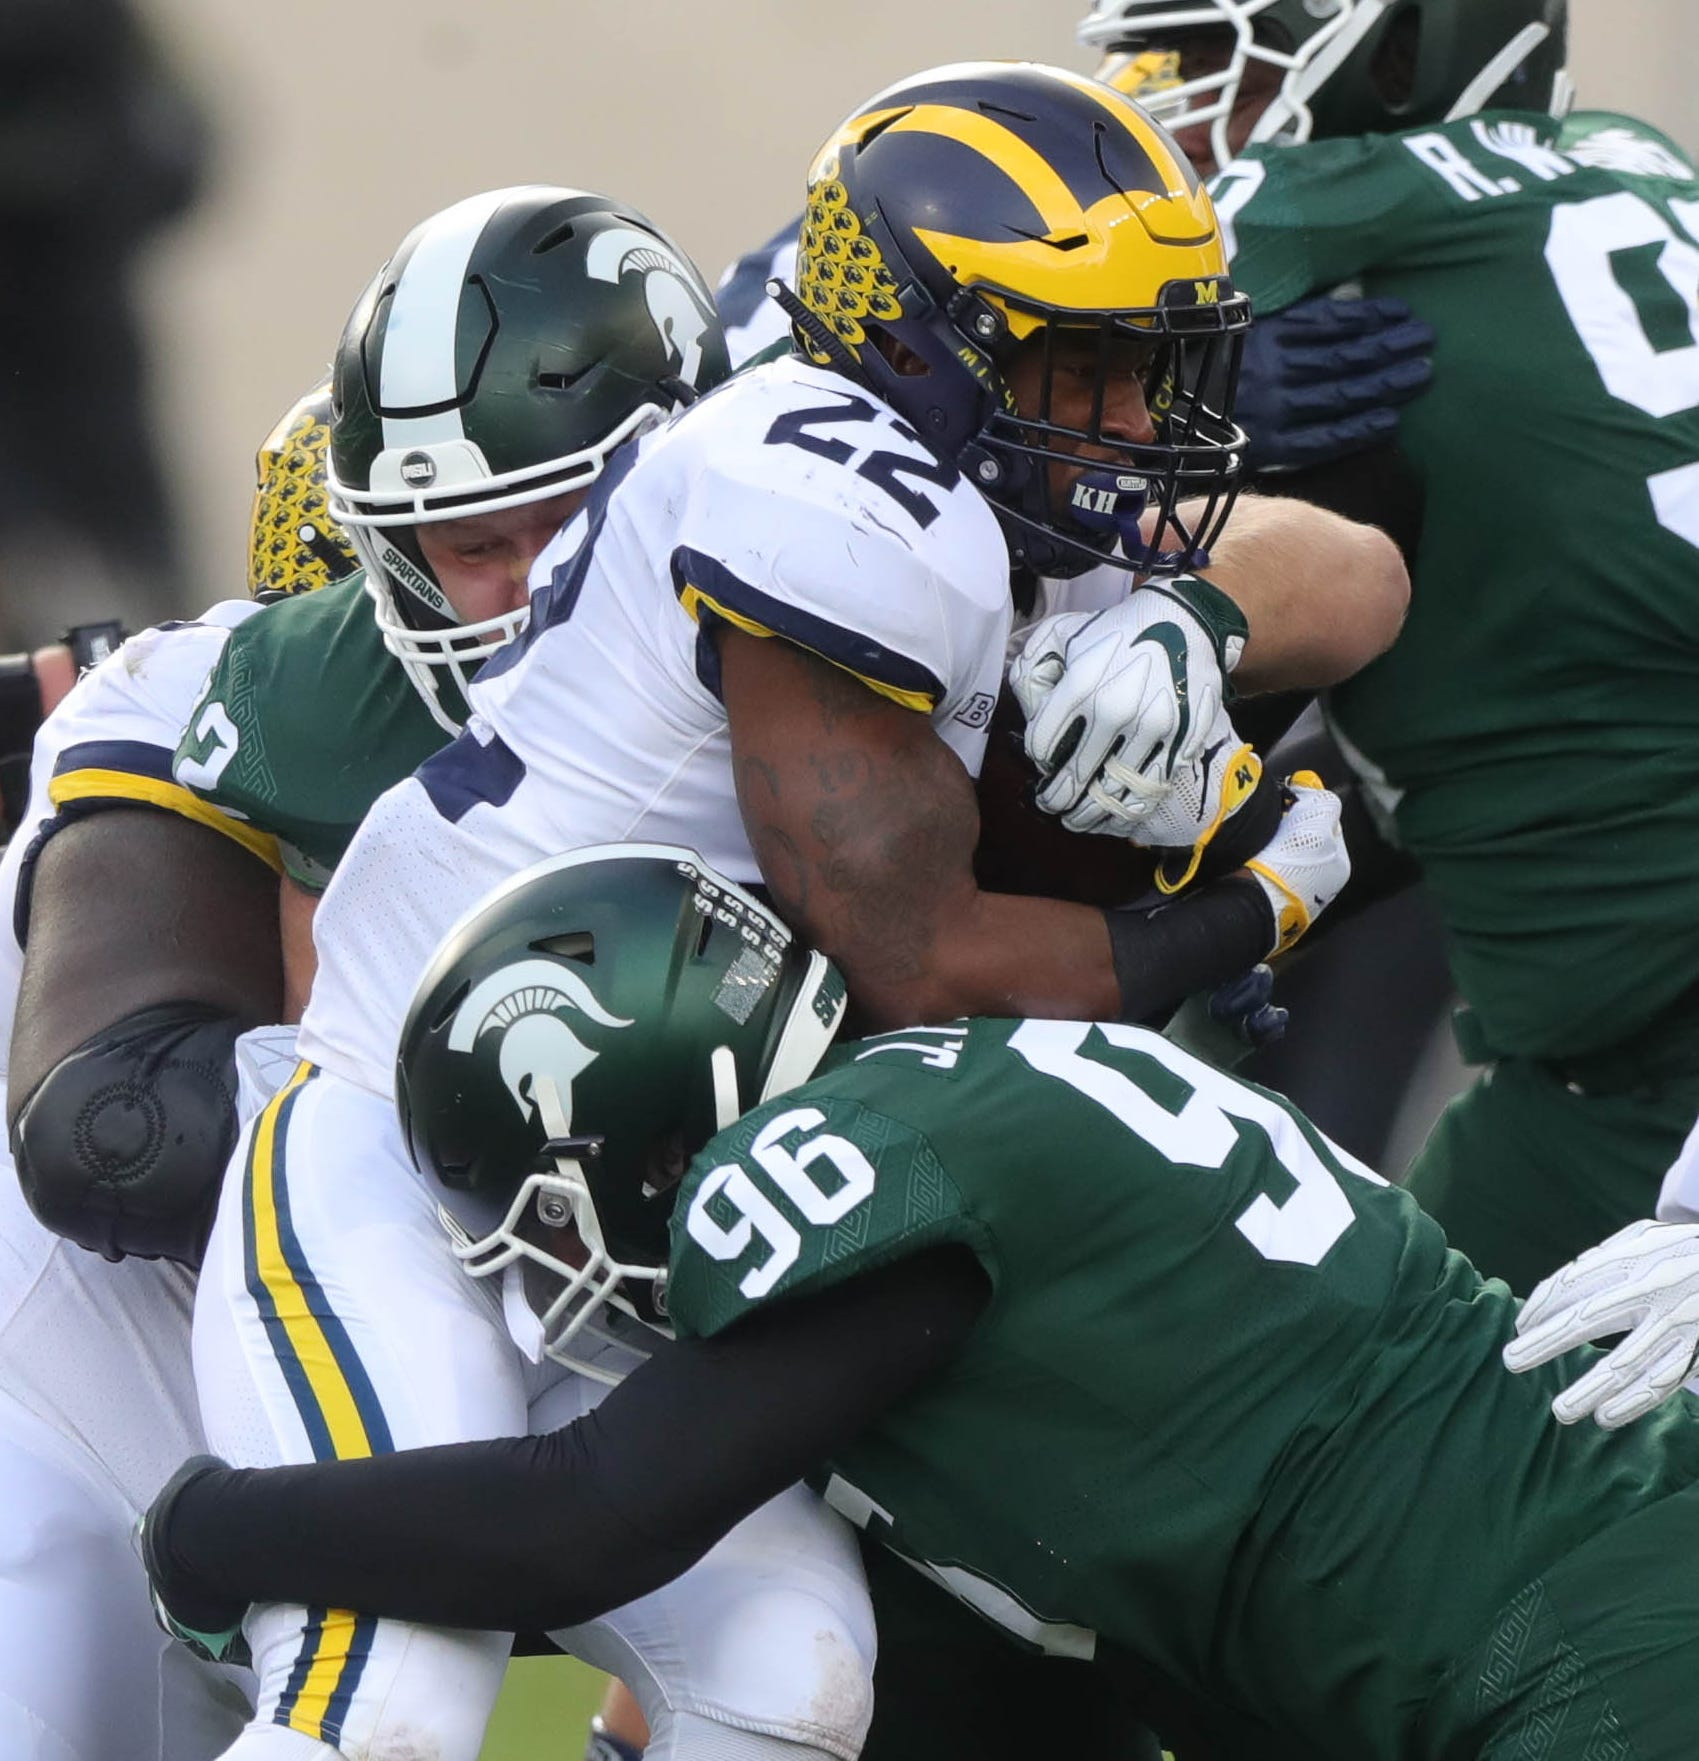 Michigan running back Karan Higdon is tackled by Michigan State defenders during the first half on Saturday, Oct. 20, 2018, at Spartan Stadium.